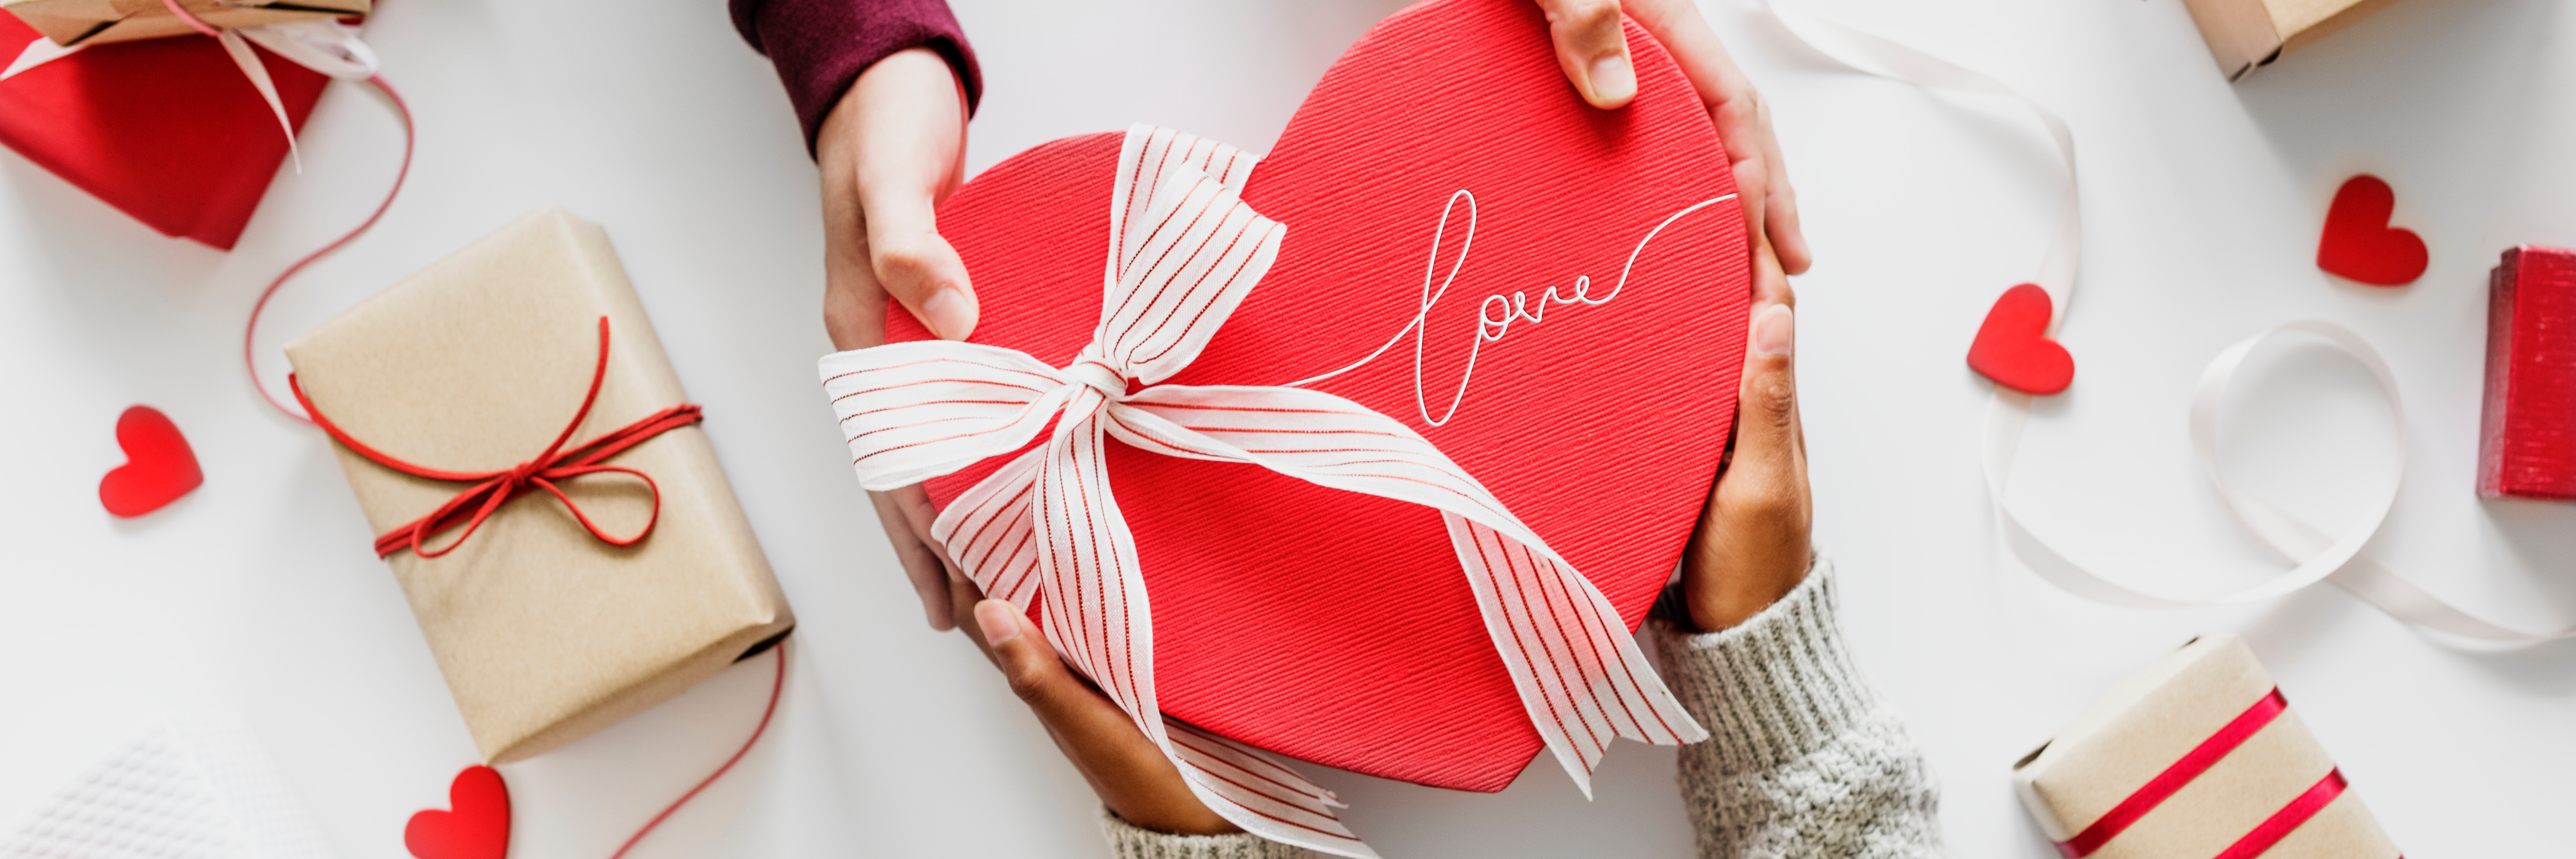 Happy Valentine's Day: How Do I Love Thee?